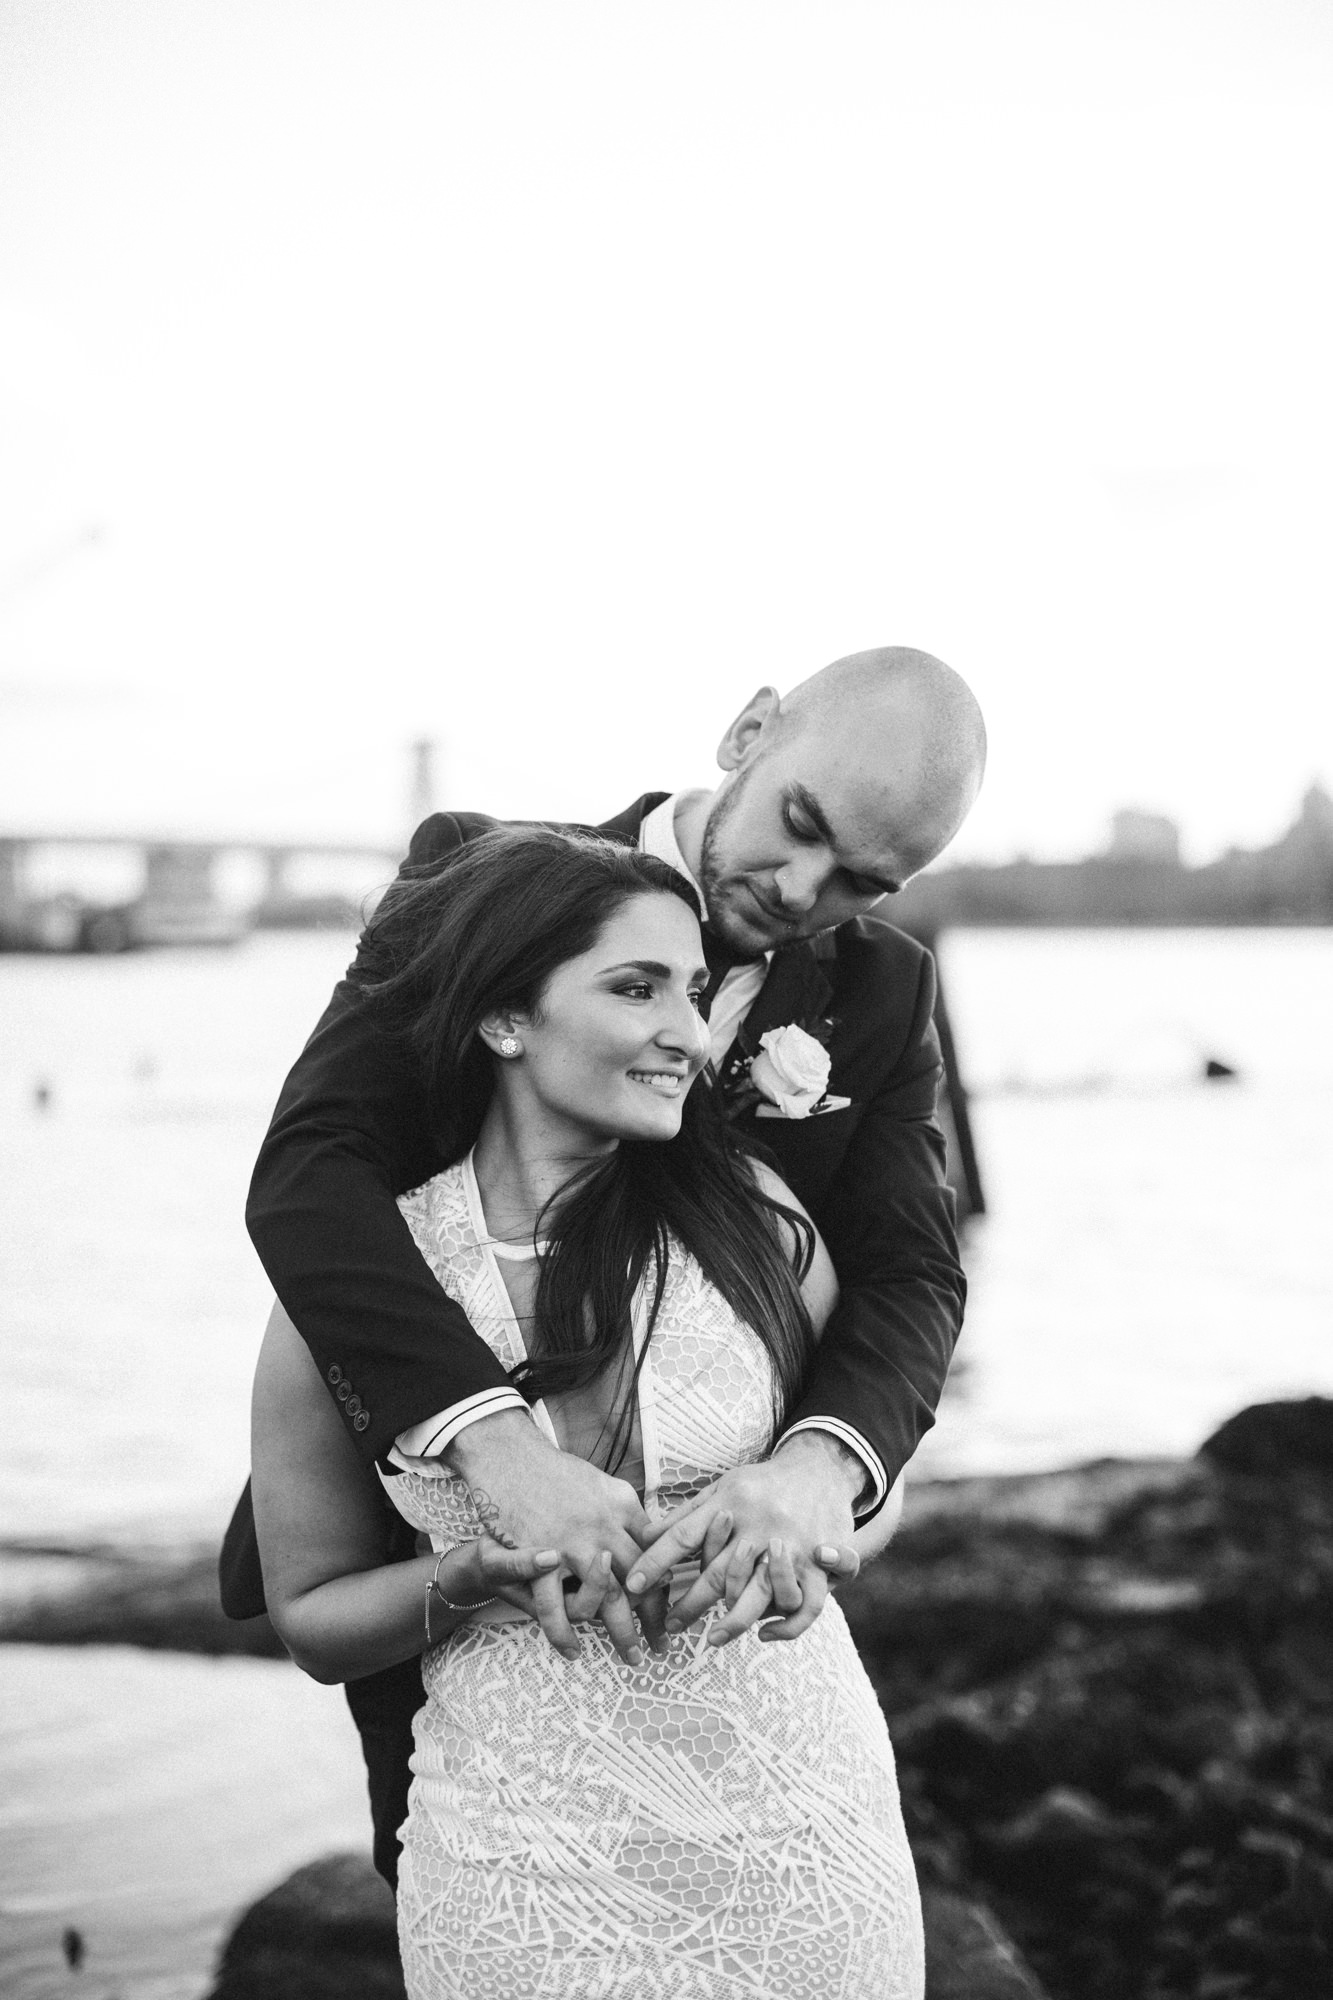 NYC_ELOPEMENT_CITYHALL_BROOKLYN_SAMMBLAKE_0051.jpg